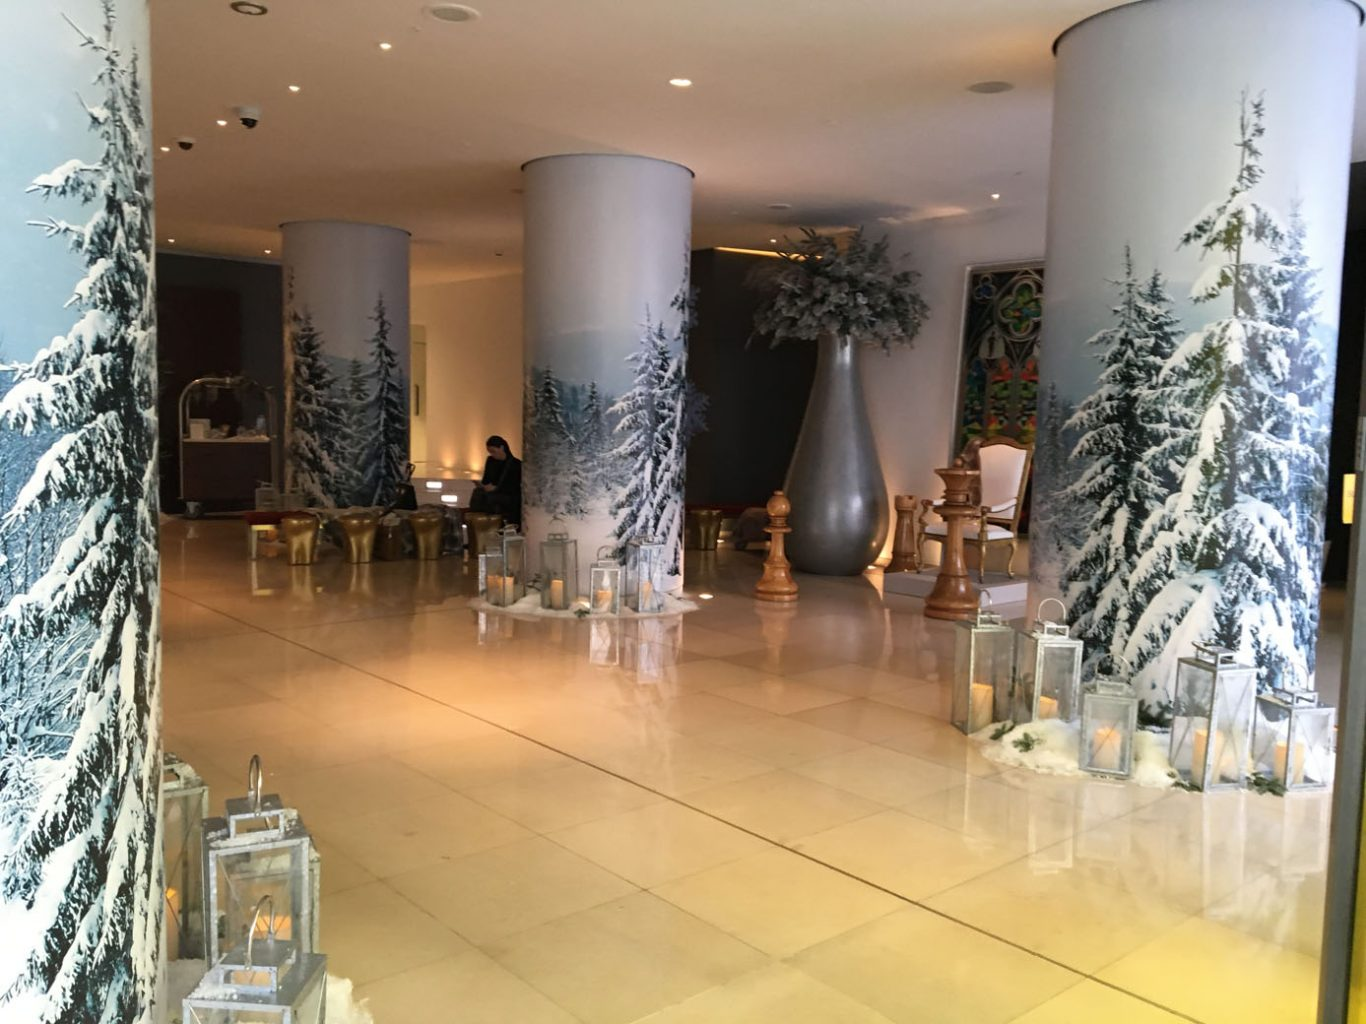 IMG 3954 - Narnia Themed Christmas Sales Conference